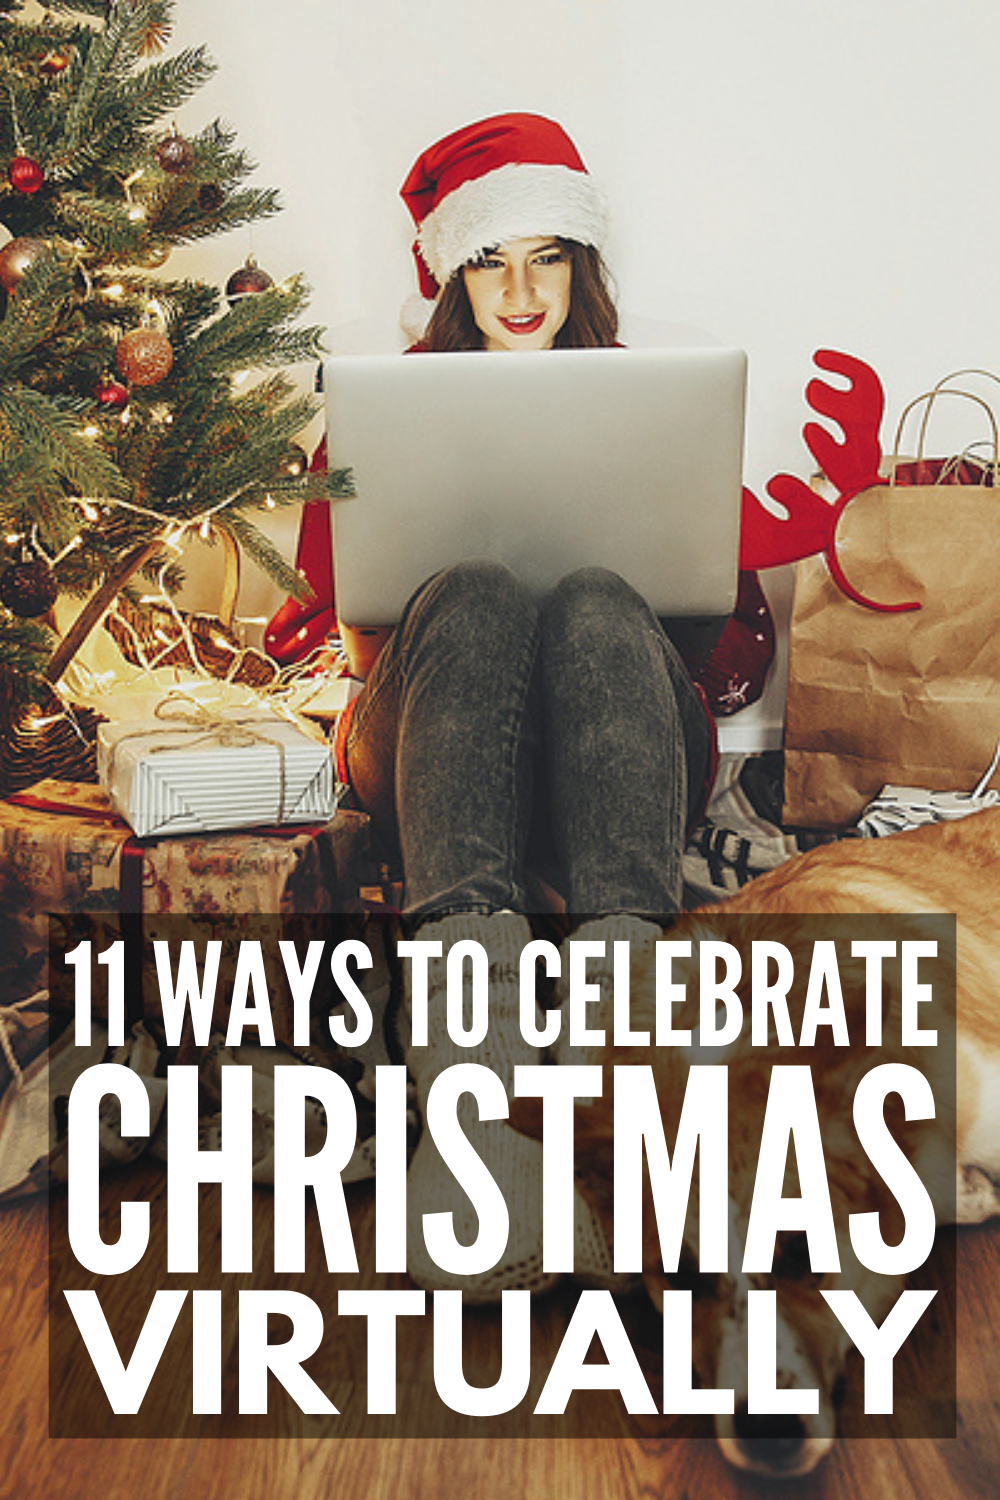 Online Celebrations 11 Family Virtual Christmas Celebration Ideas In 2020 Christmas Celebrations Family Christmas Party Holiday Traditions Family